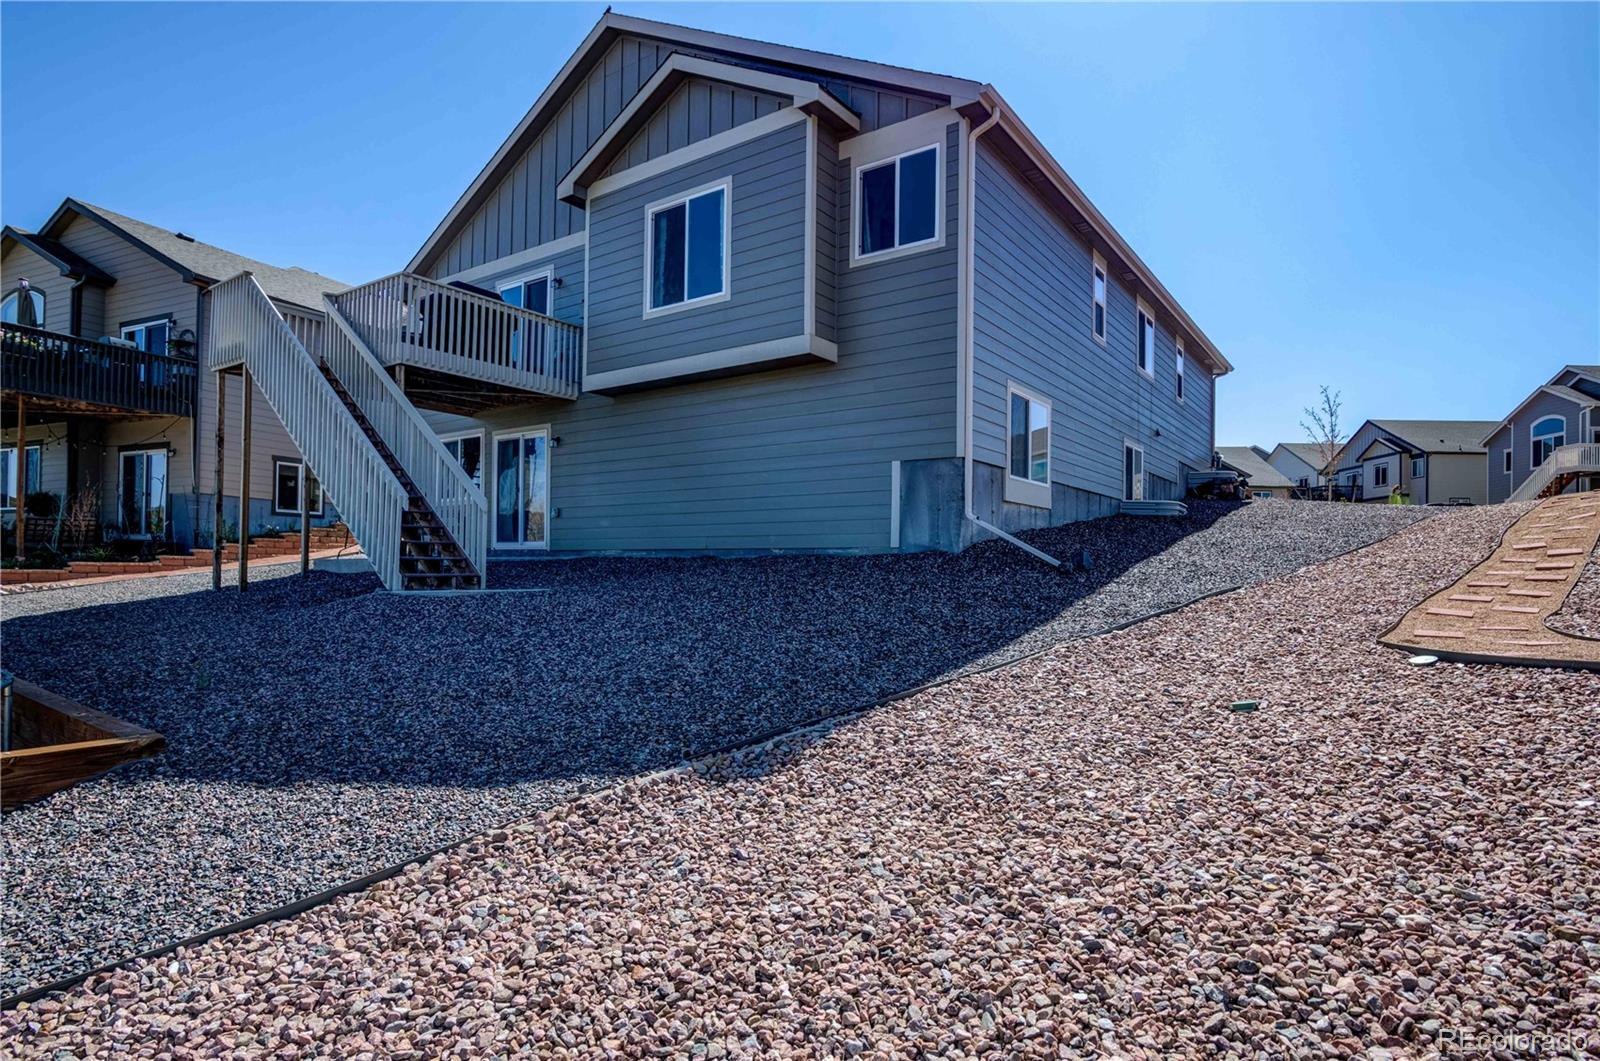 MLS# 5849980 - 37 - 17856 17856 Way, Monument, CO 80132